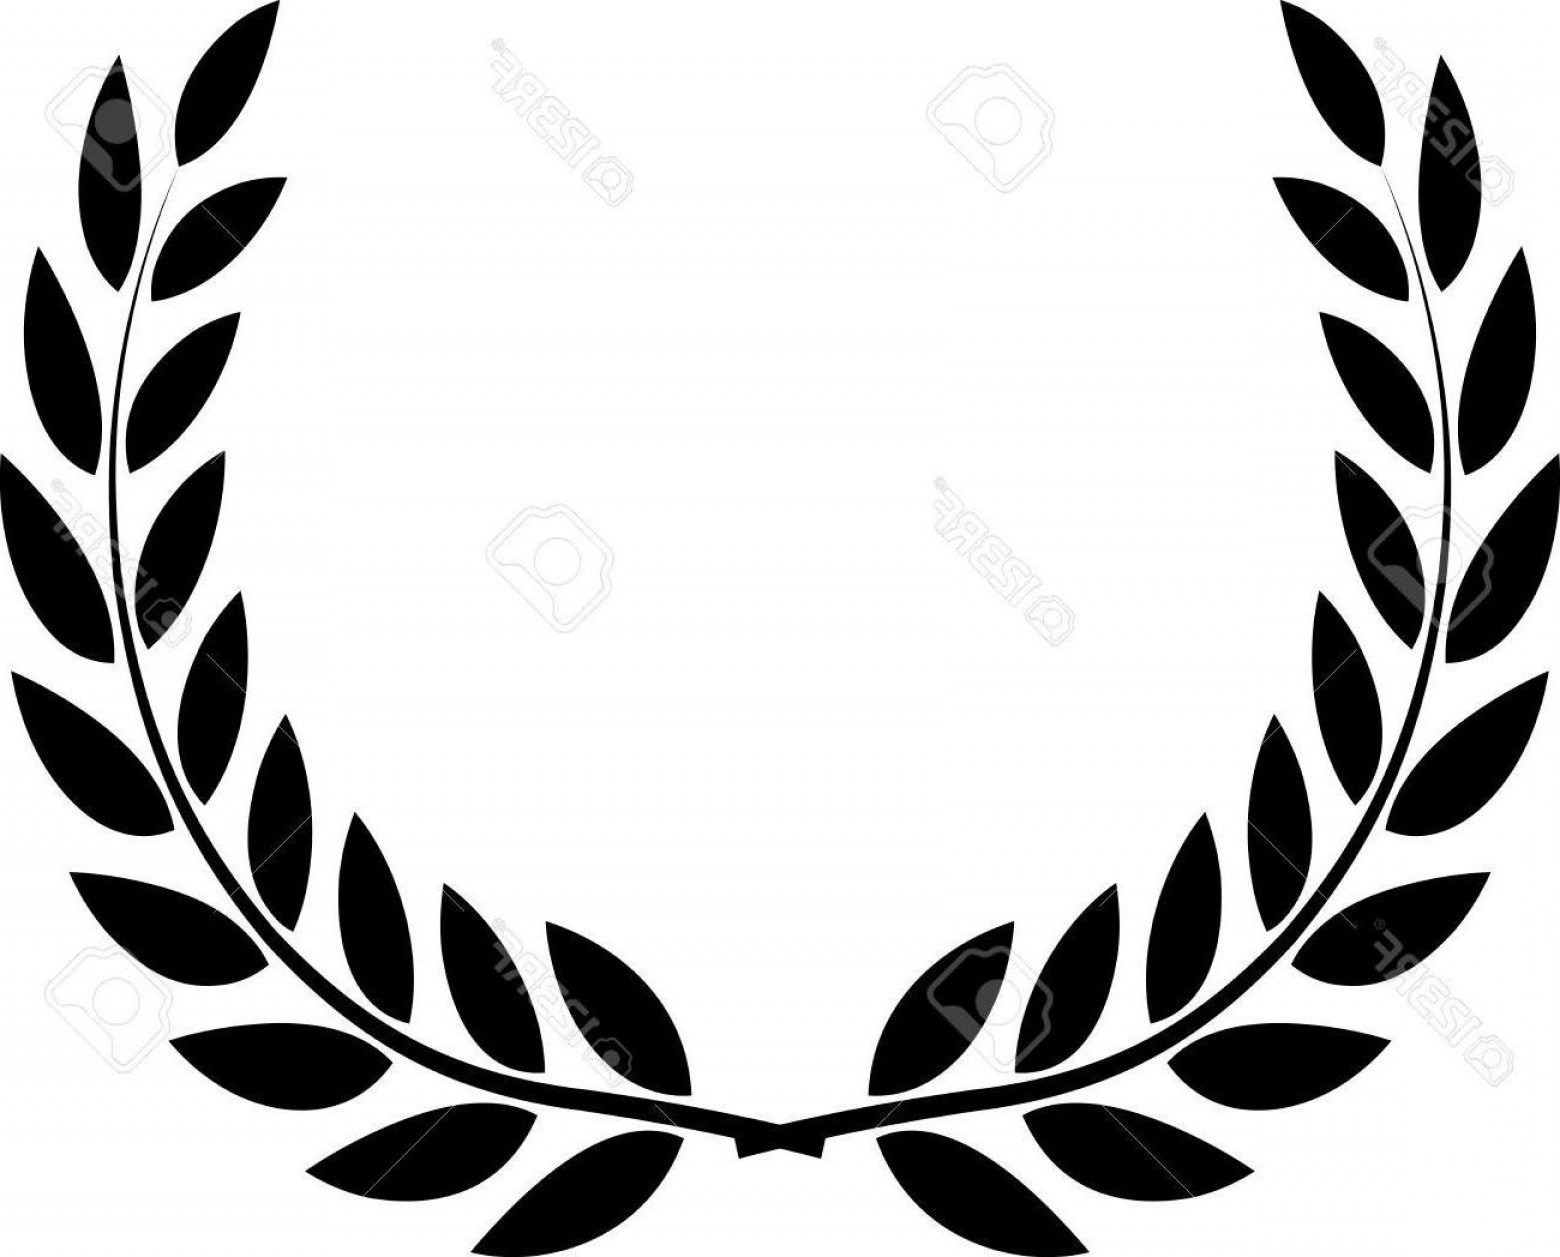 Award Vector Leaves: Best Free Award Vector Leaves Image